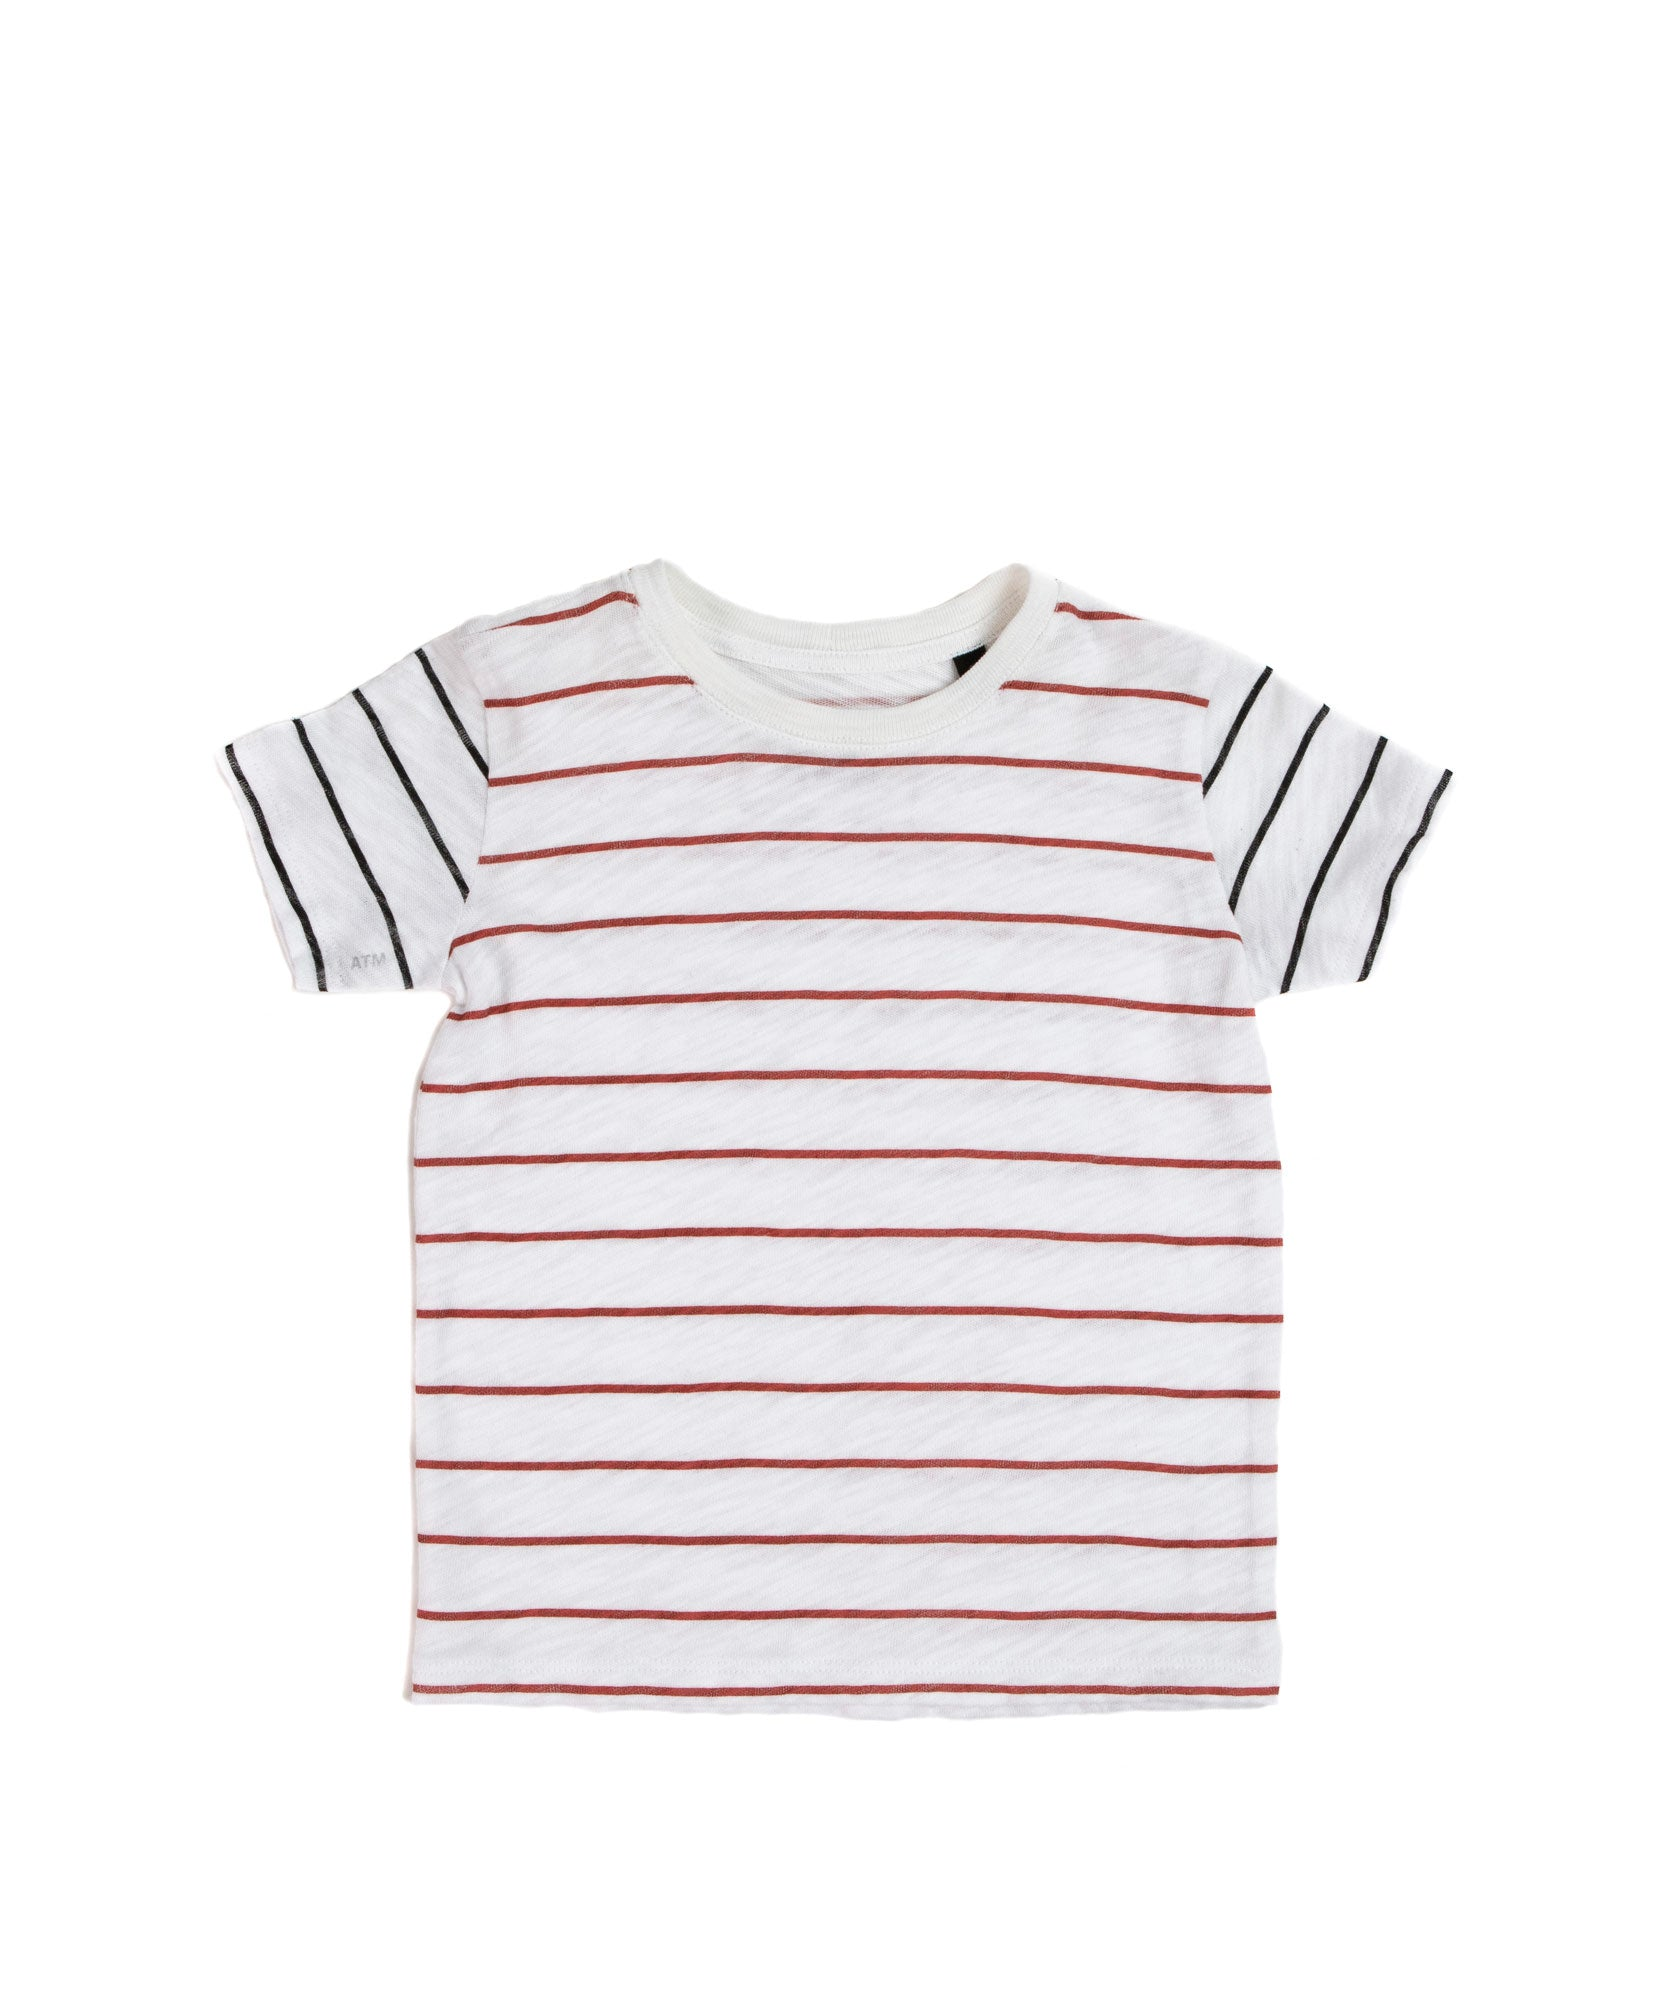 Kids Striped Slub Jersey Short Sleeve Tee - Kid's Cotton Short Sleeve Tee by ATM Anthony Thomas Melillo